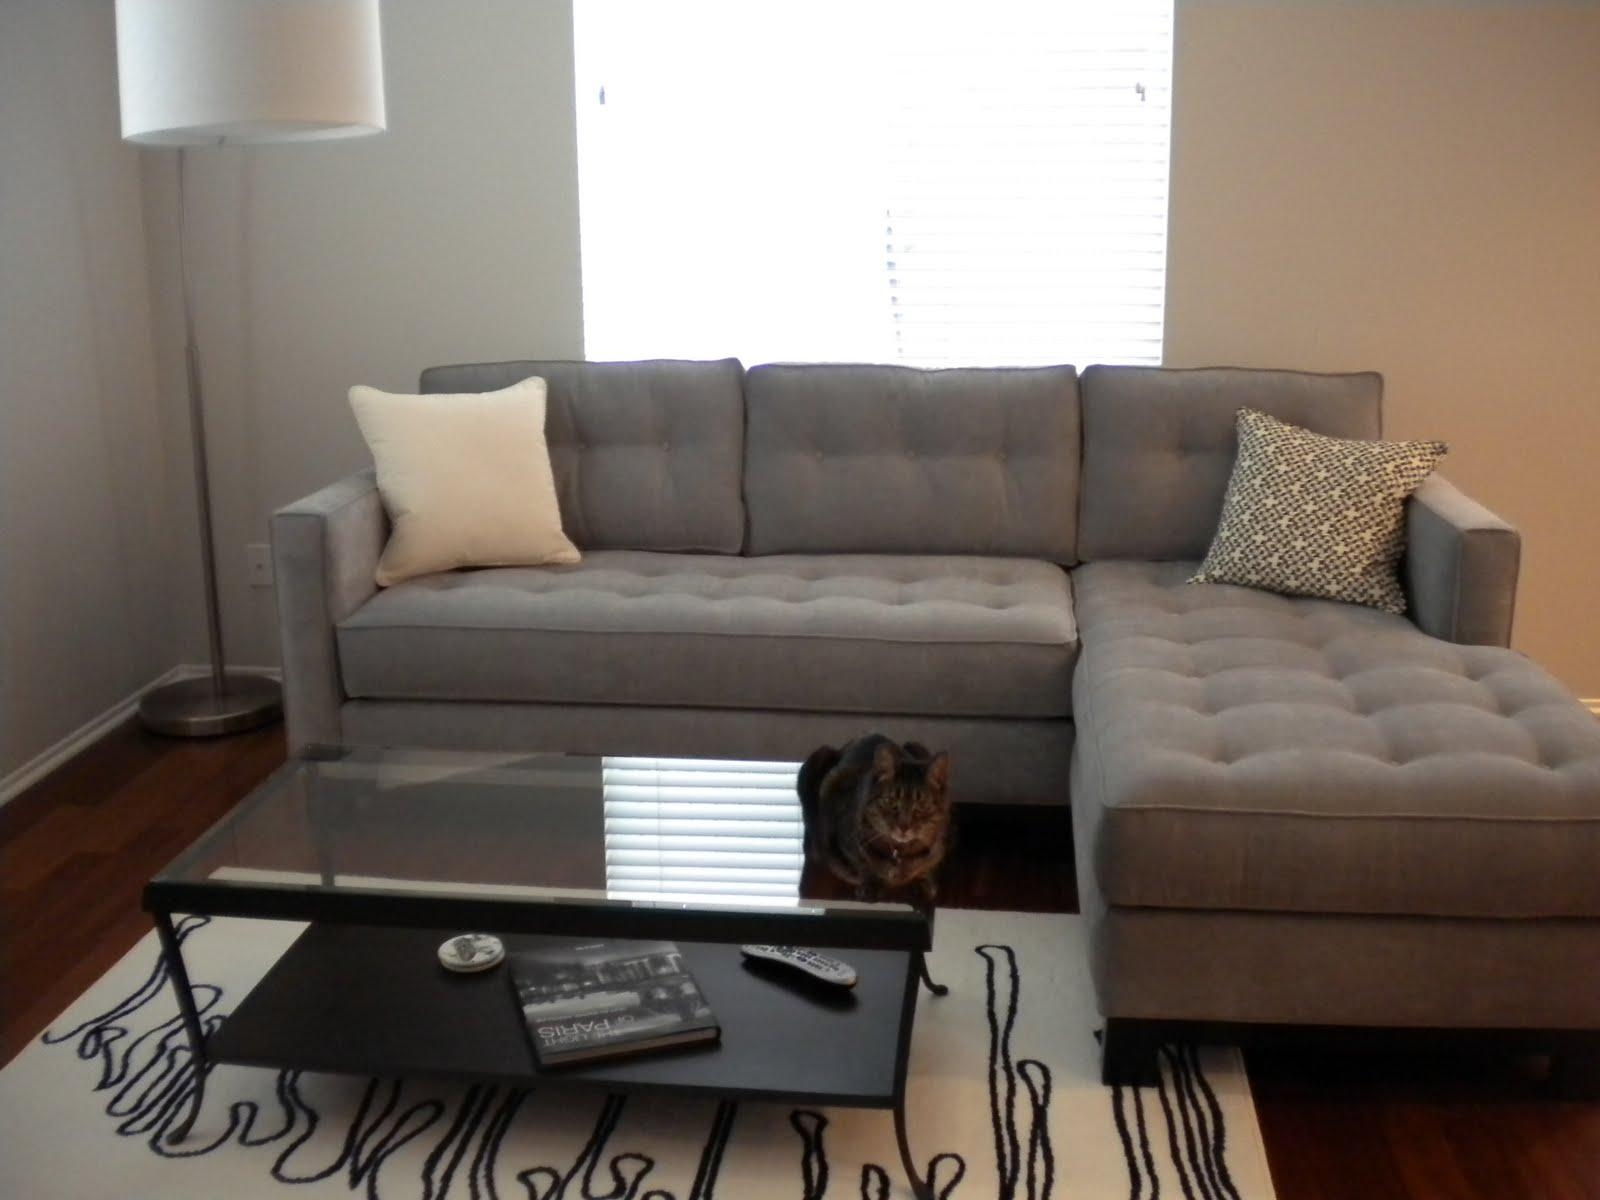 Furniture & Sofa: Best Sectional For Small Spaces | Small Space In Mini Sectional Sofas (View 10 of 20)